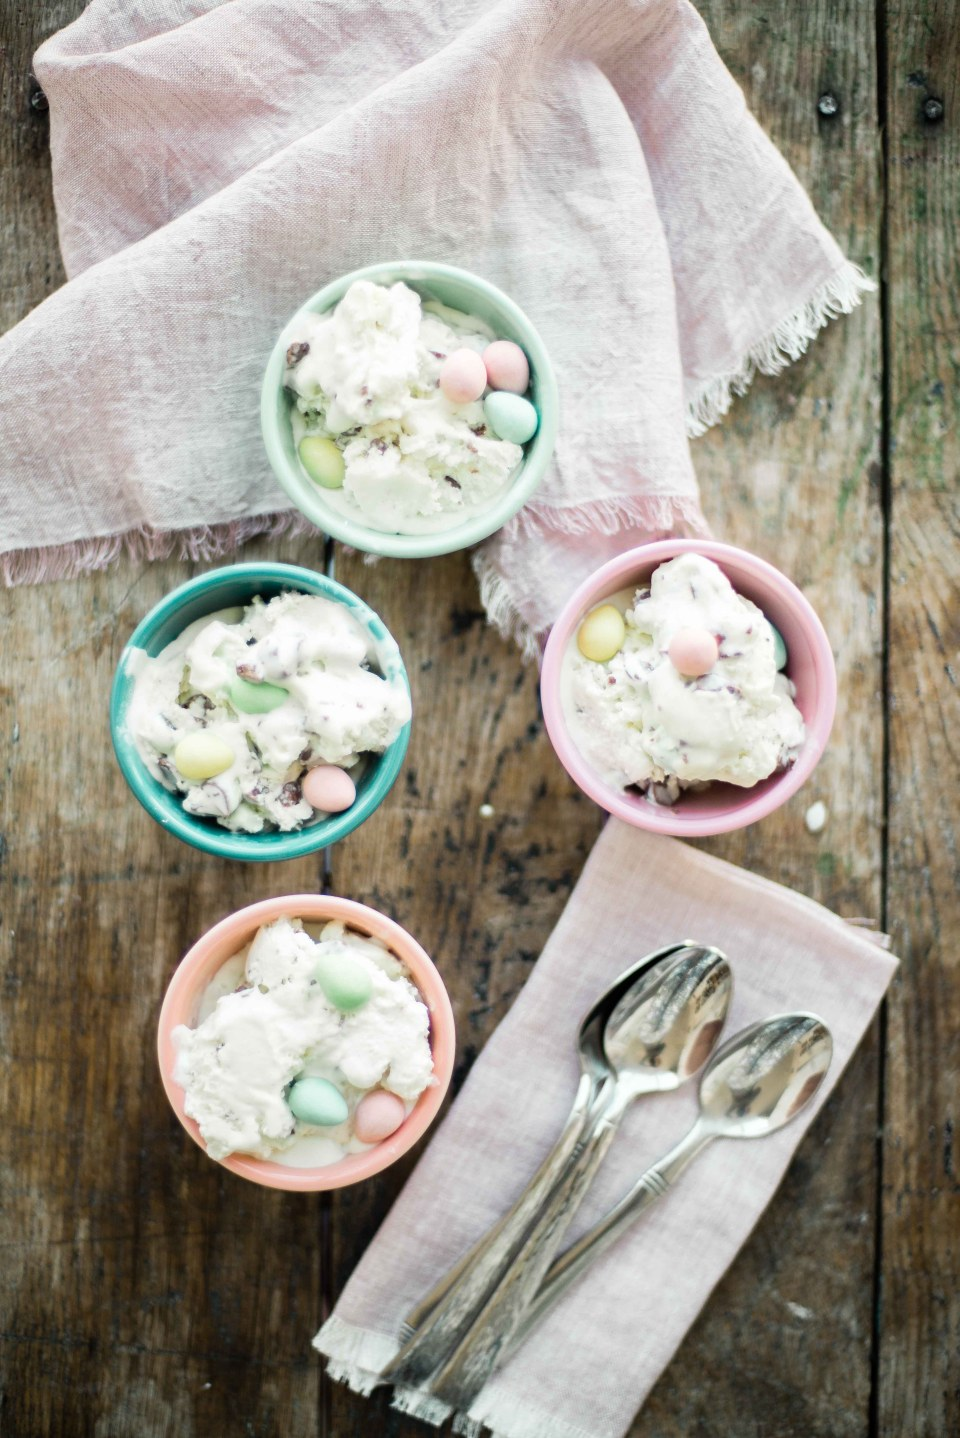 Homemade Ice Cream with Cadbury Mini eggs for Easter!